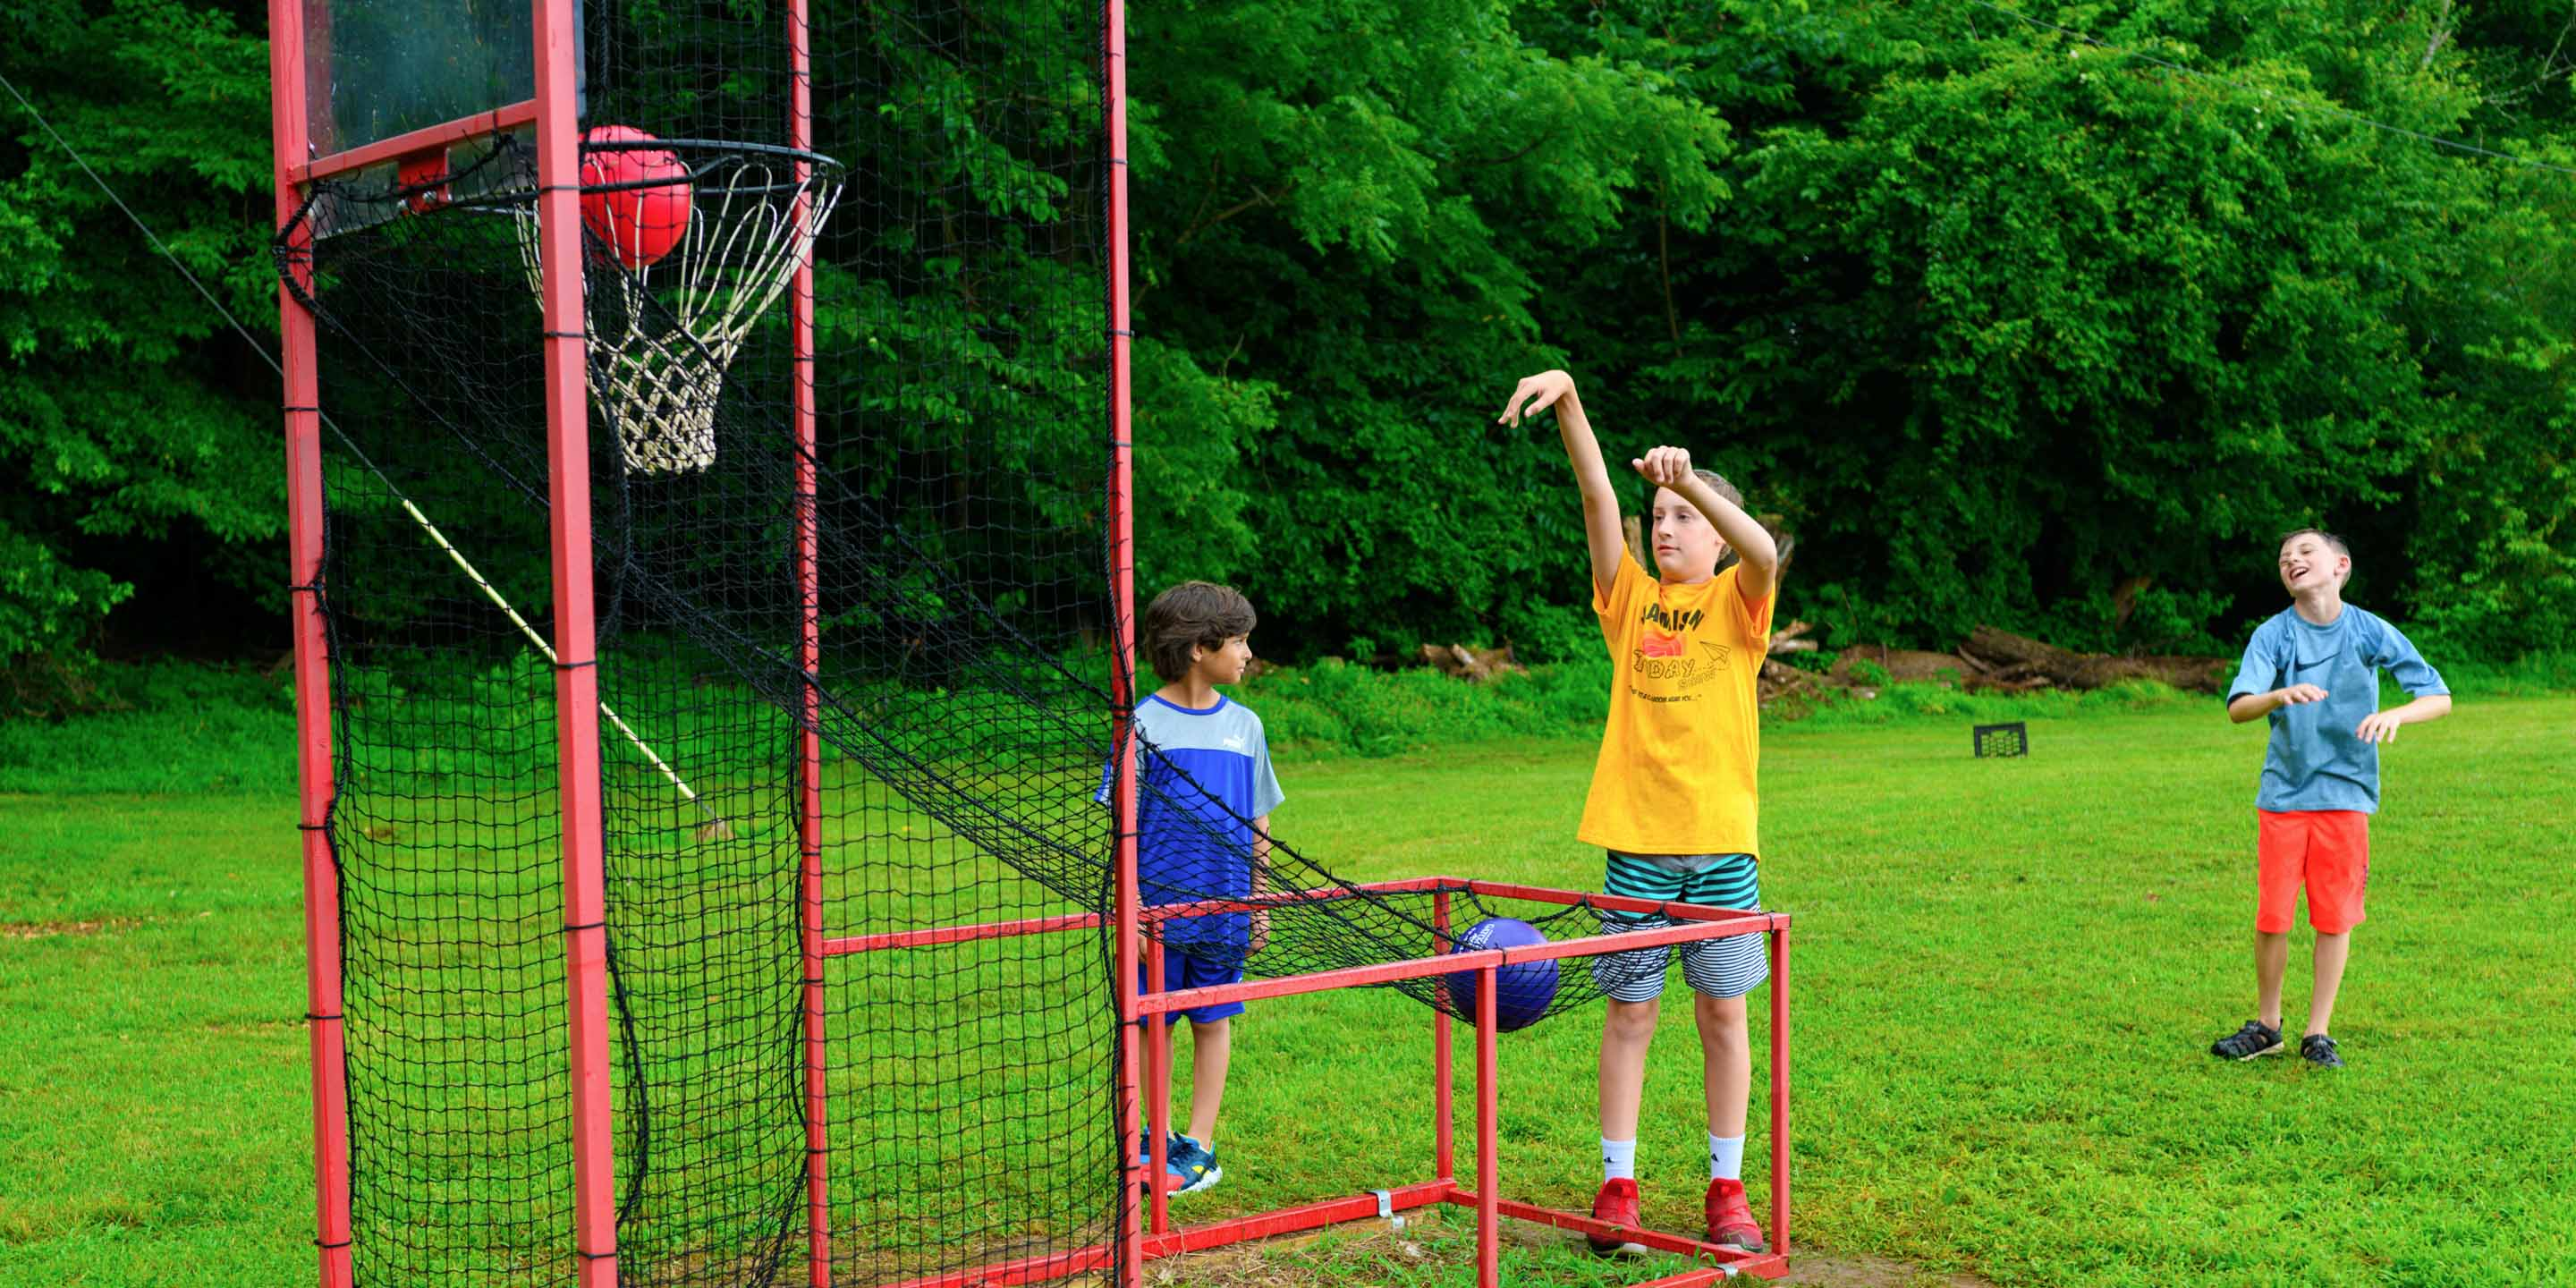 Camper playing basketball